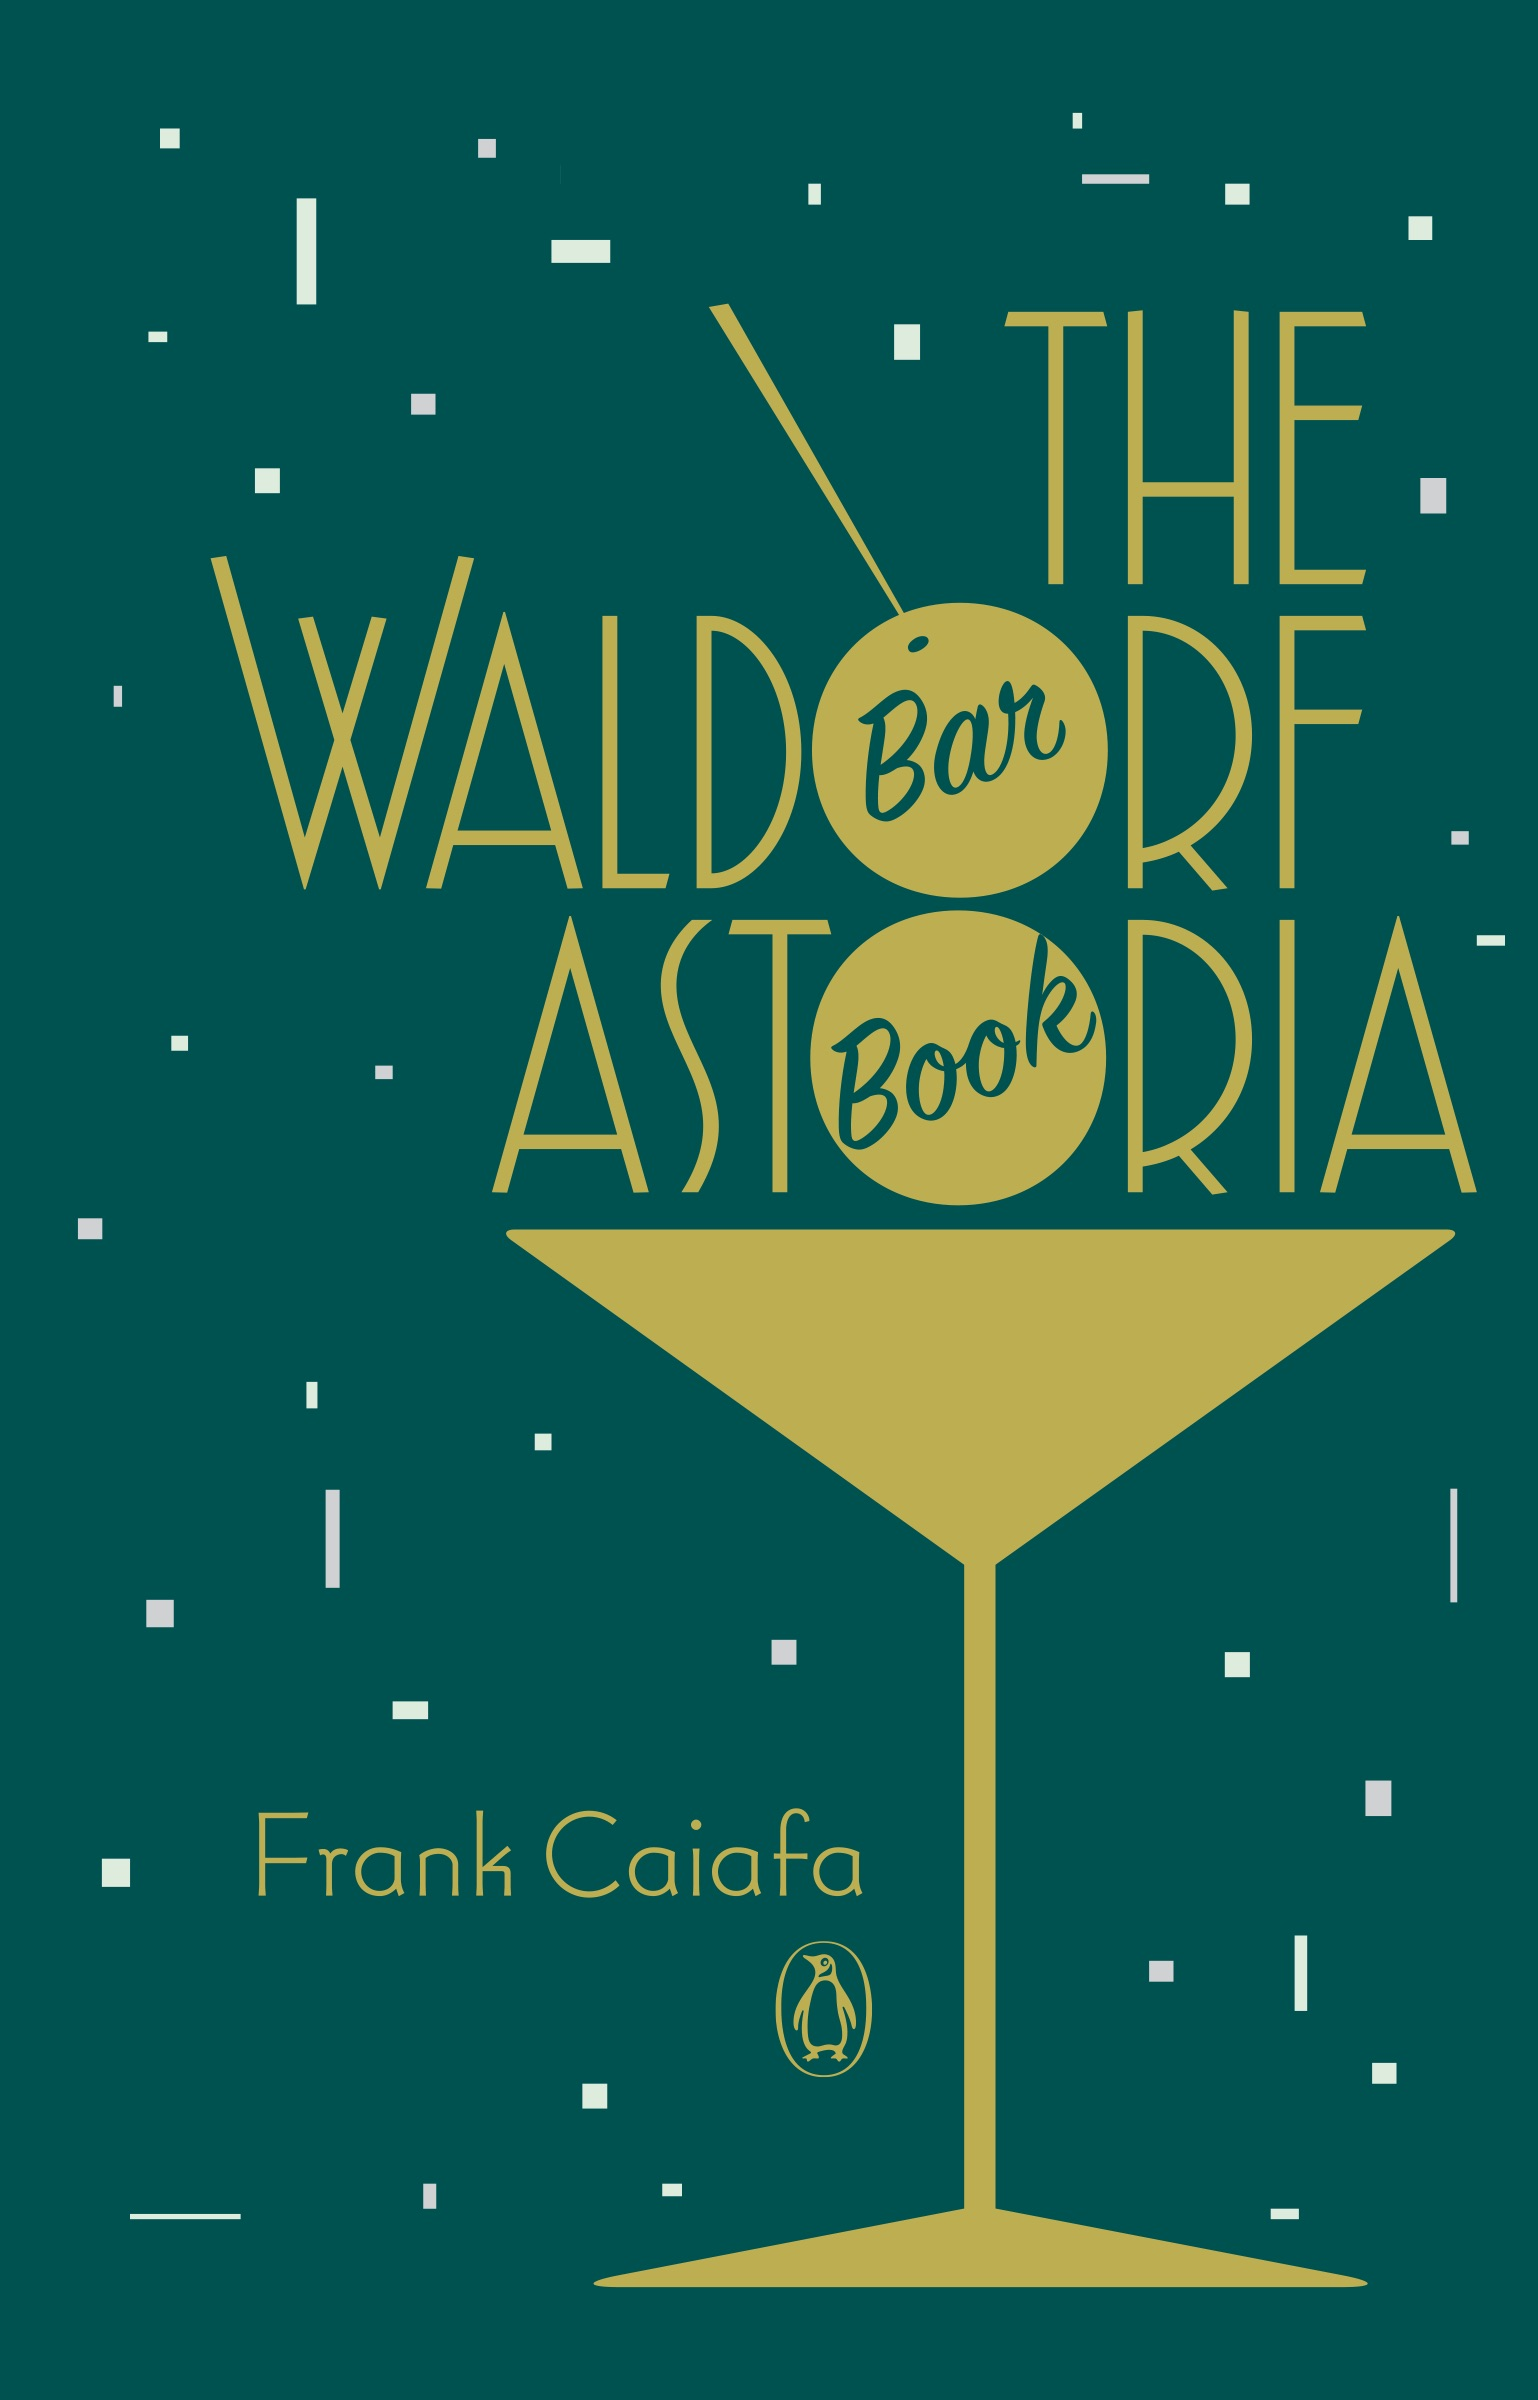 Waldorf bar book.jpg